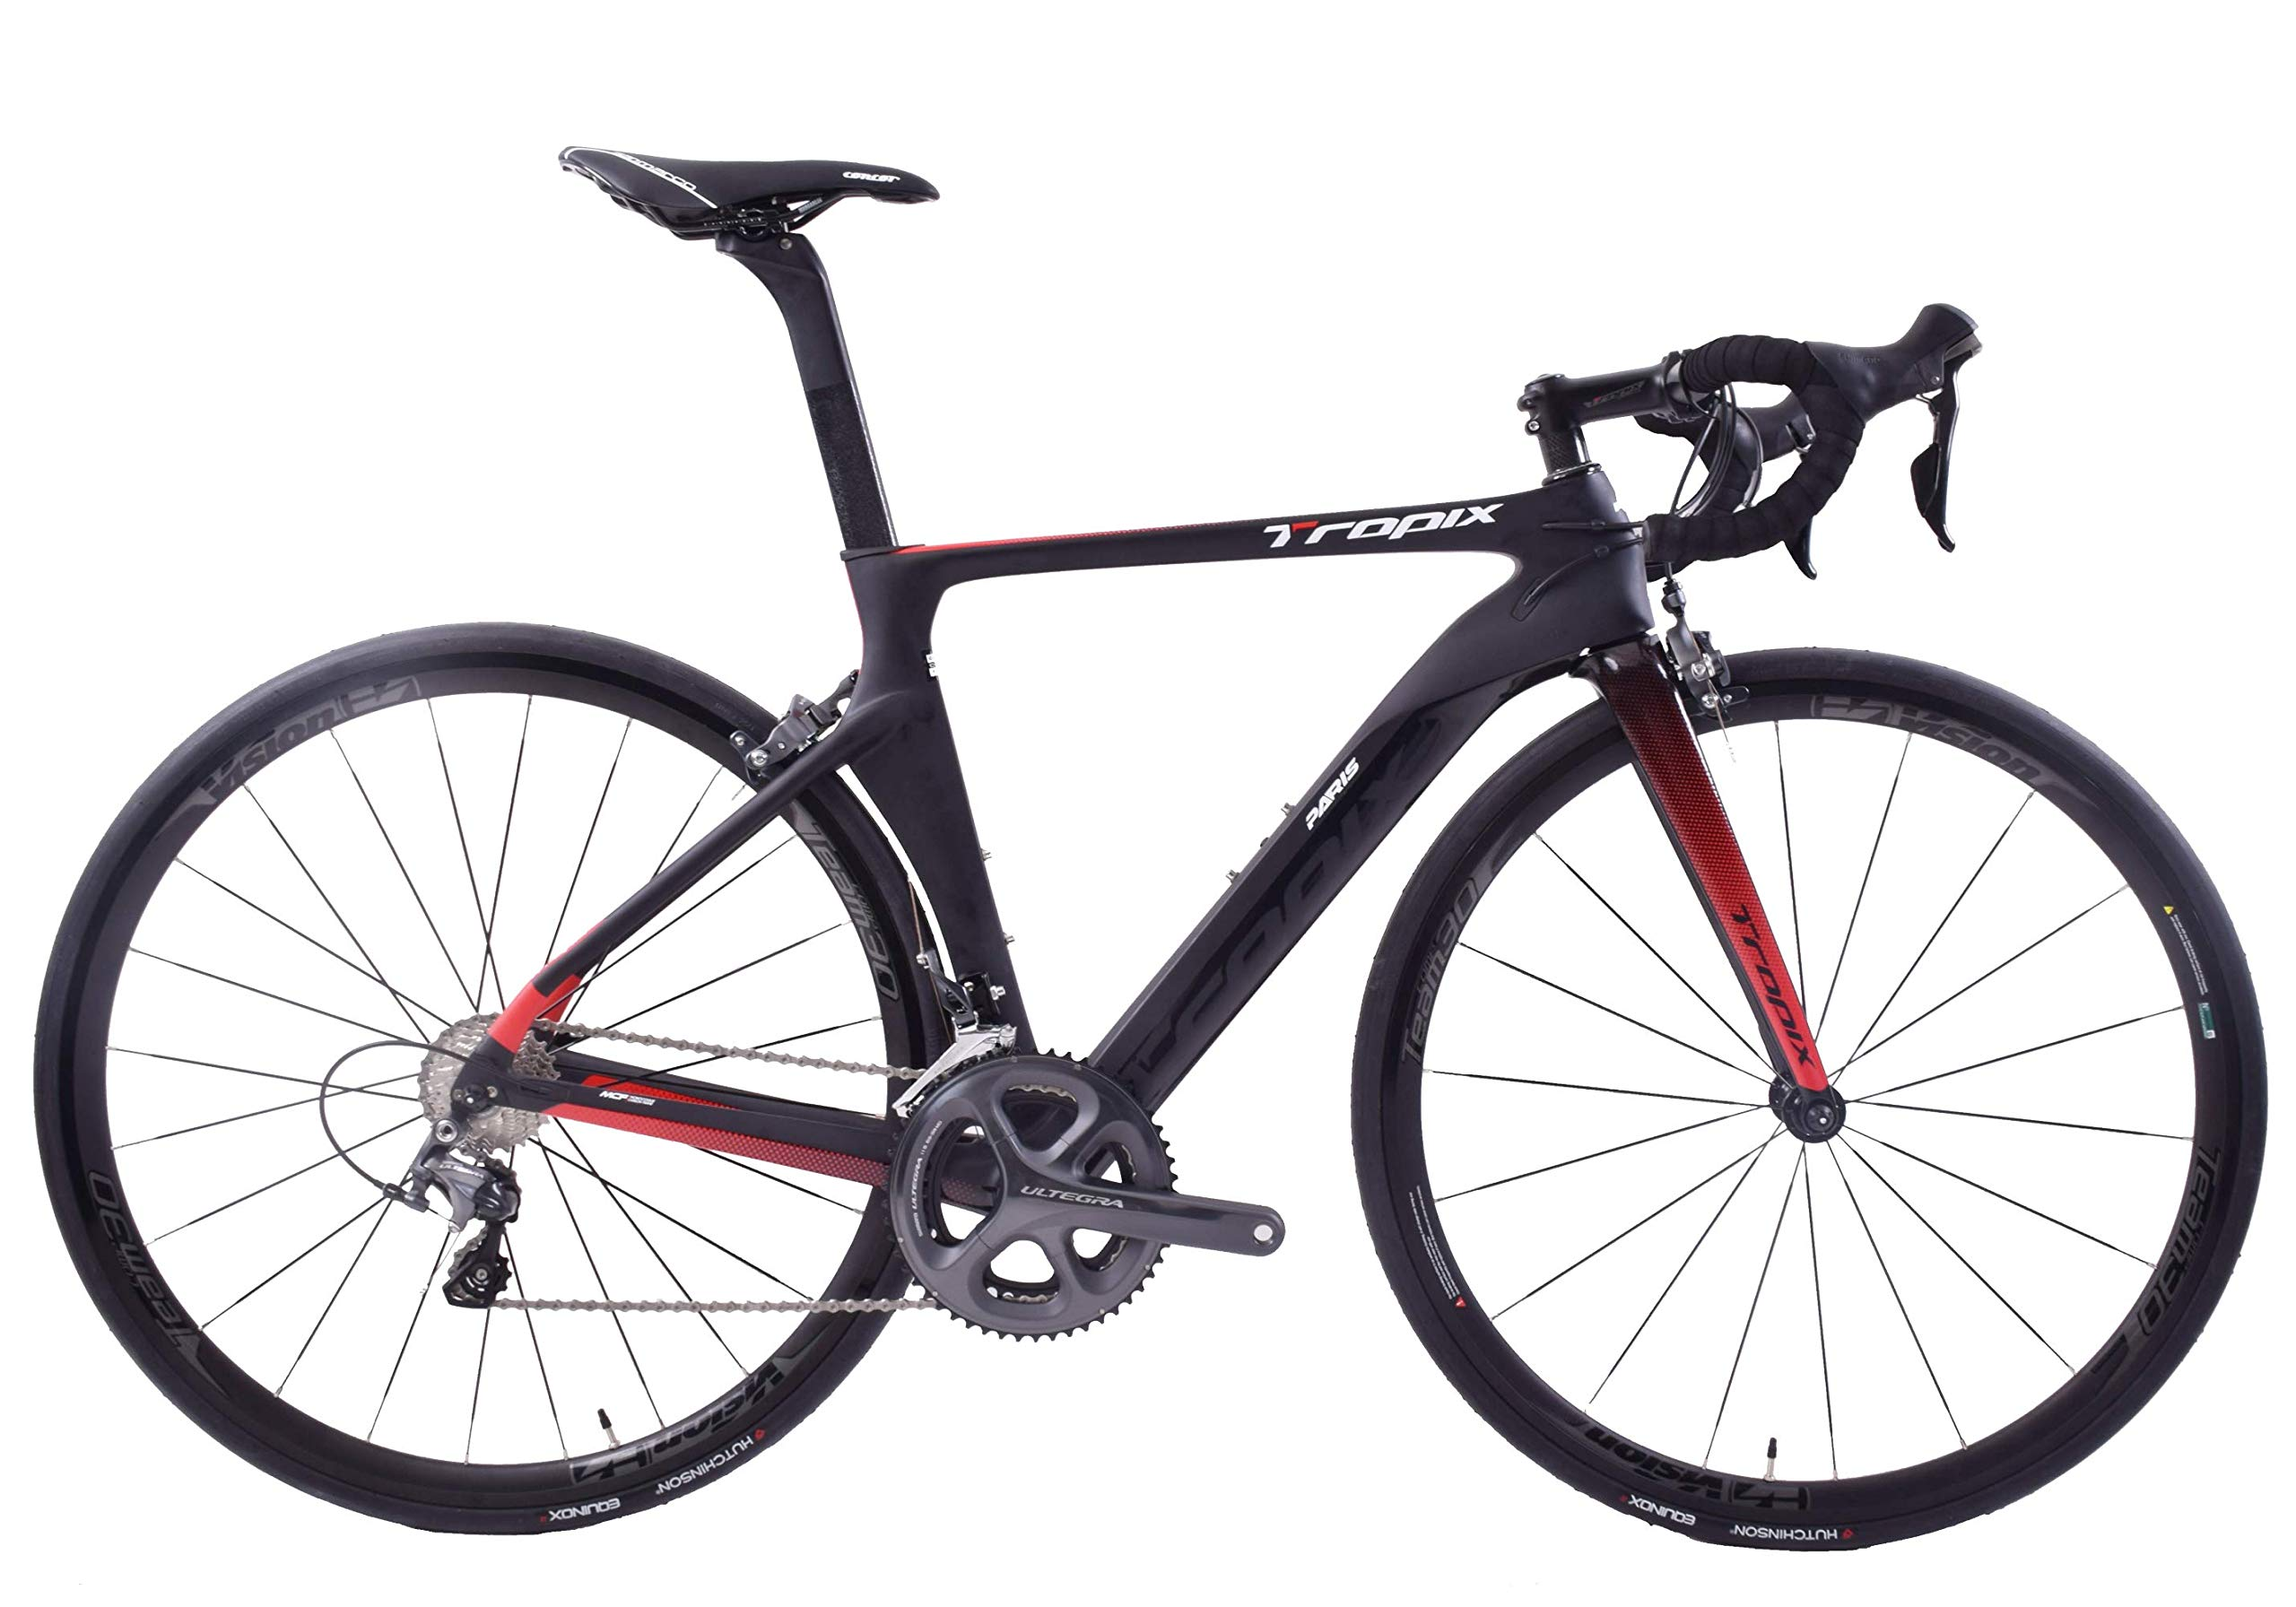 Tropix Paris 700c Wheel Road Racing Bike 48cm Lightweight Carbon Fibre Frame Shimano Ultegra 22 Speed